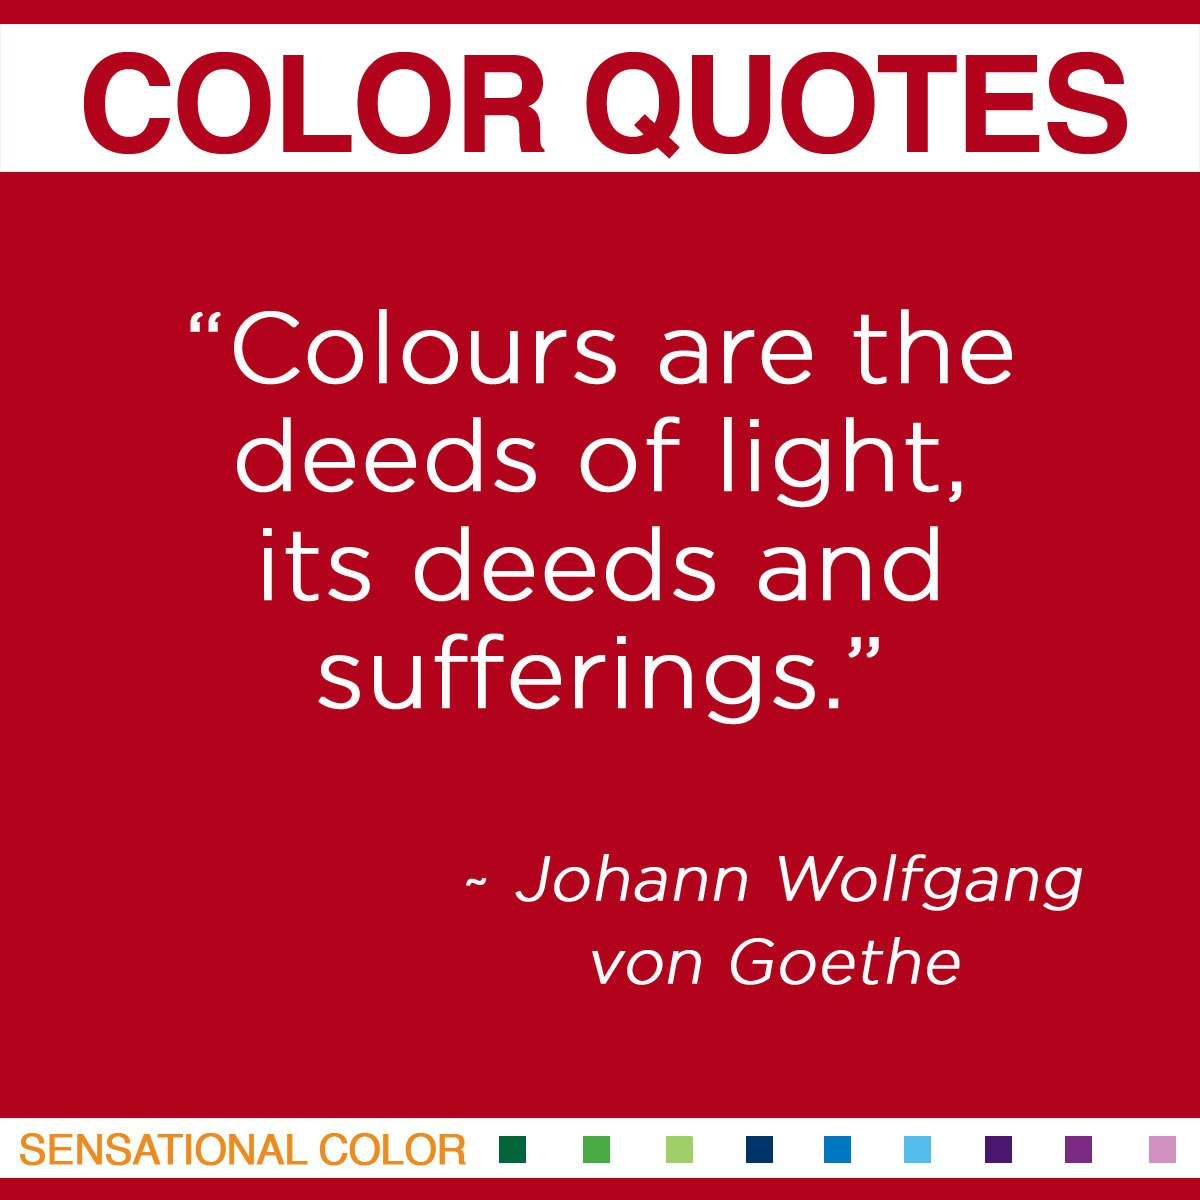 """Colours are the deeds of light, its deeds and sufferings."" - Johann Wolfgang von Goethe"